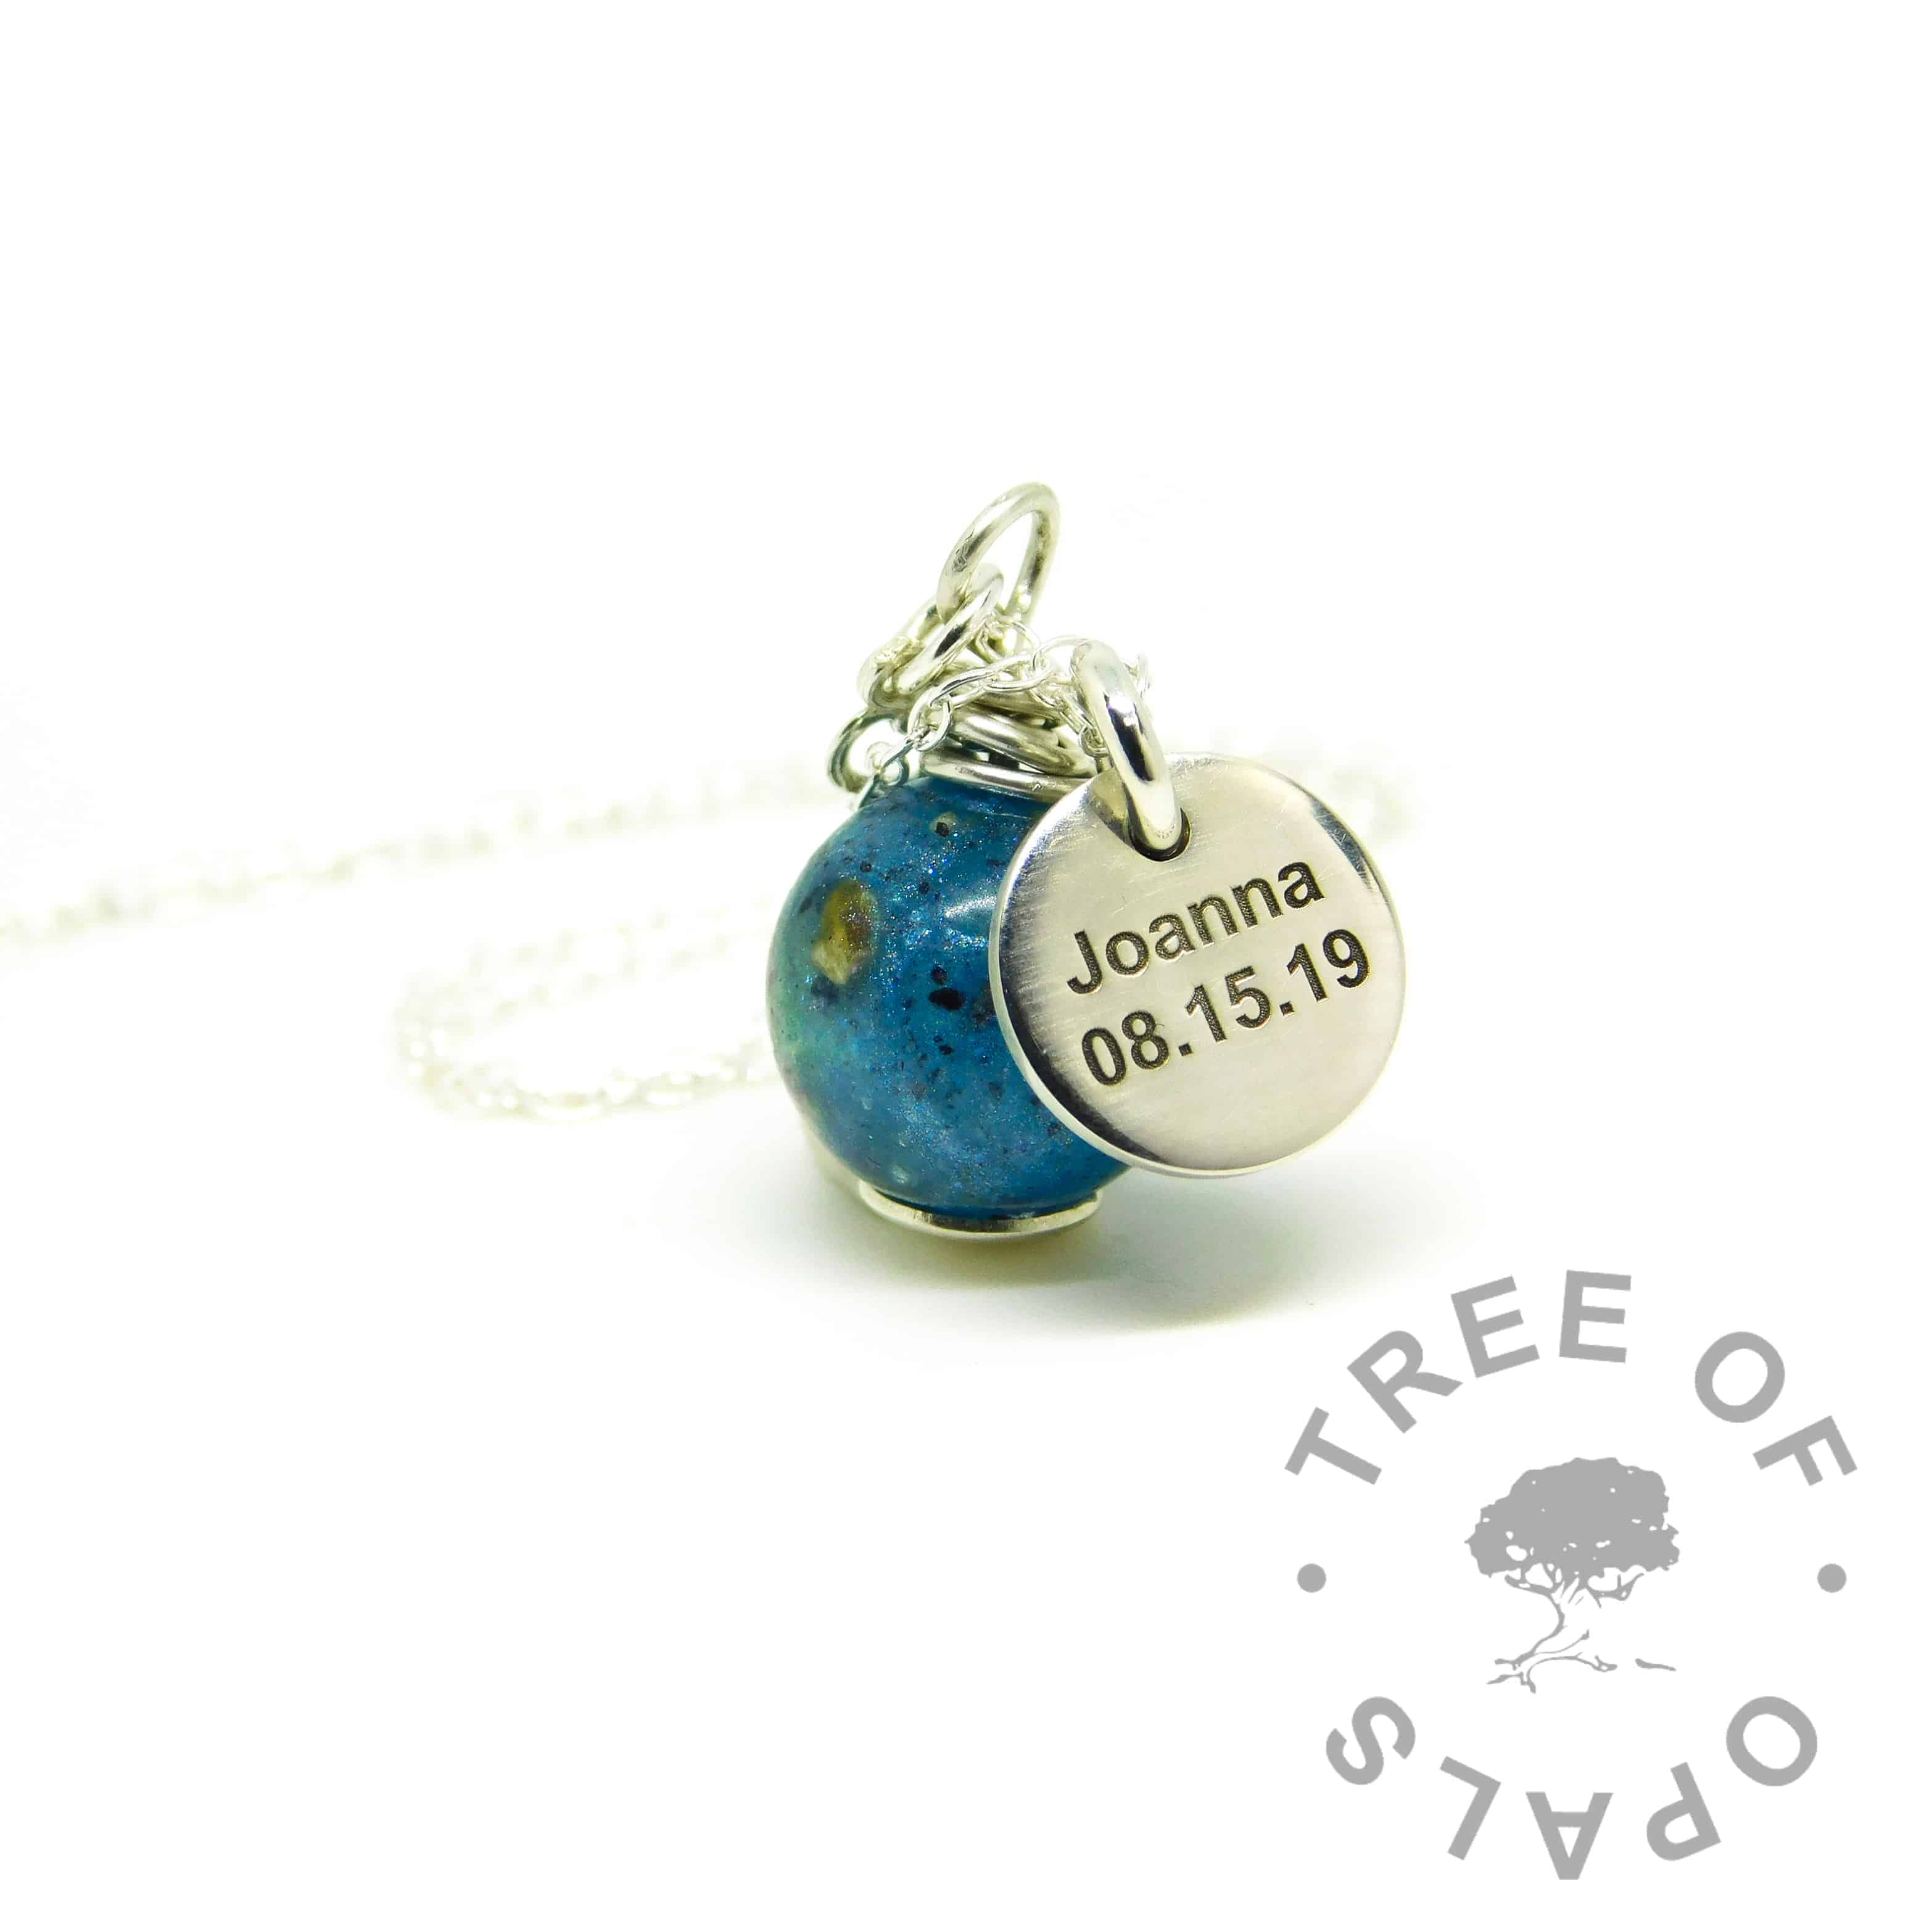 keepsake jewellery umbilical necklace with Aegean blue resin sparkle mix, shown with an engraved disc